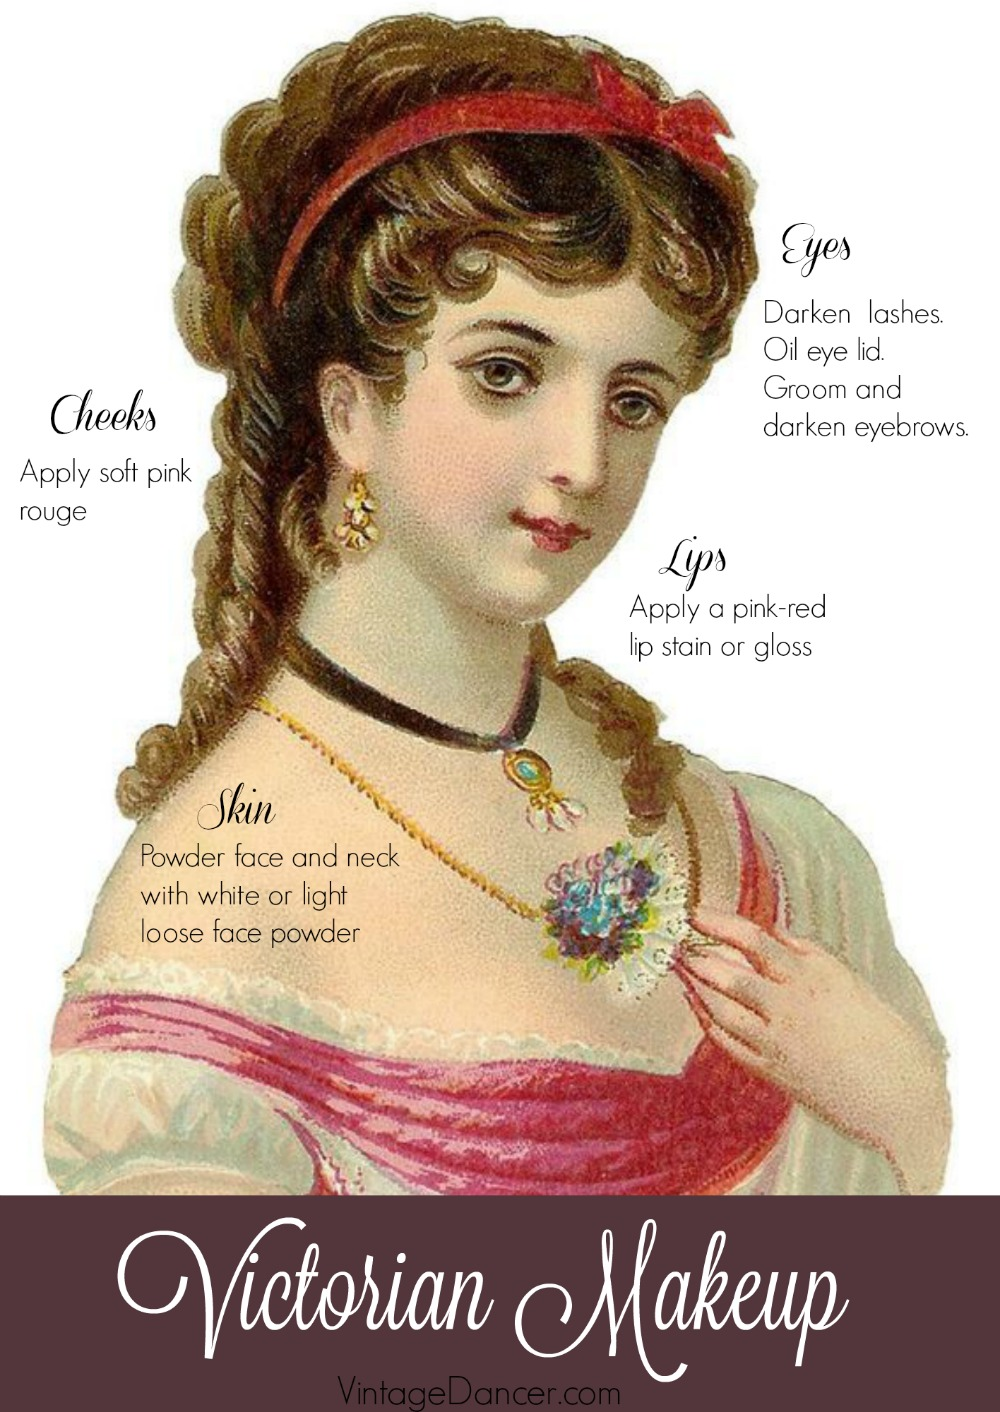 Victorian Makeup Guide & Beauty History